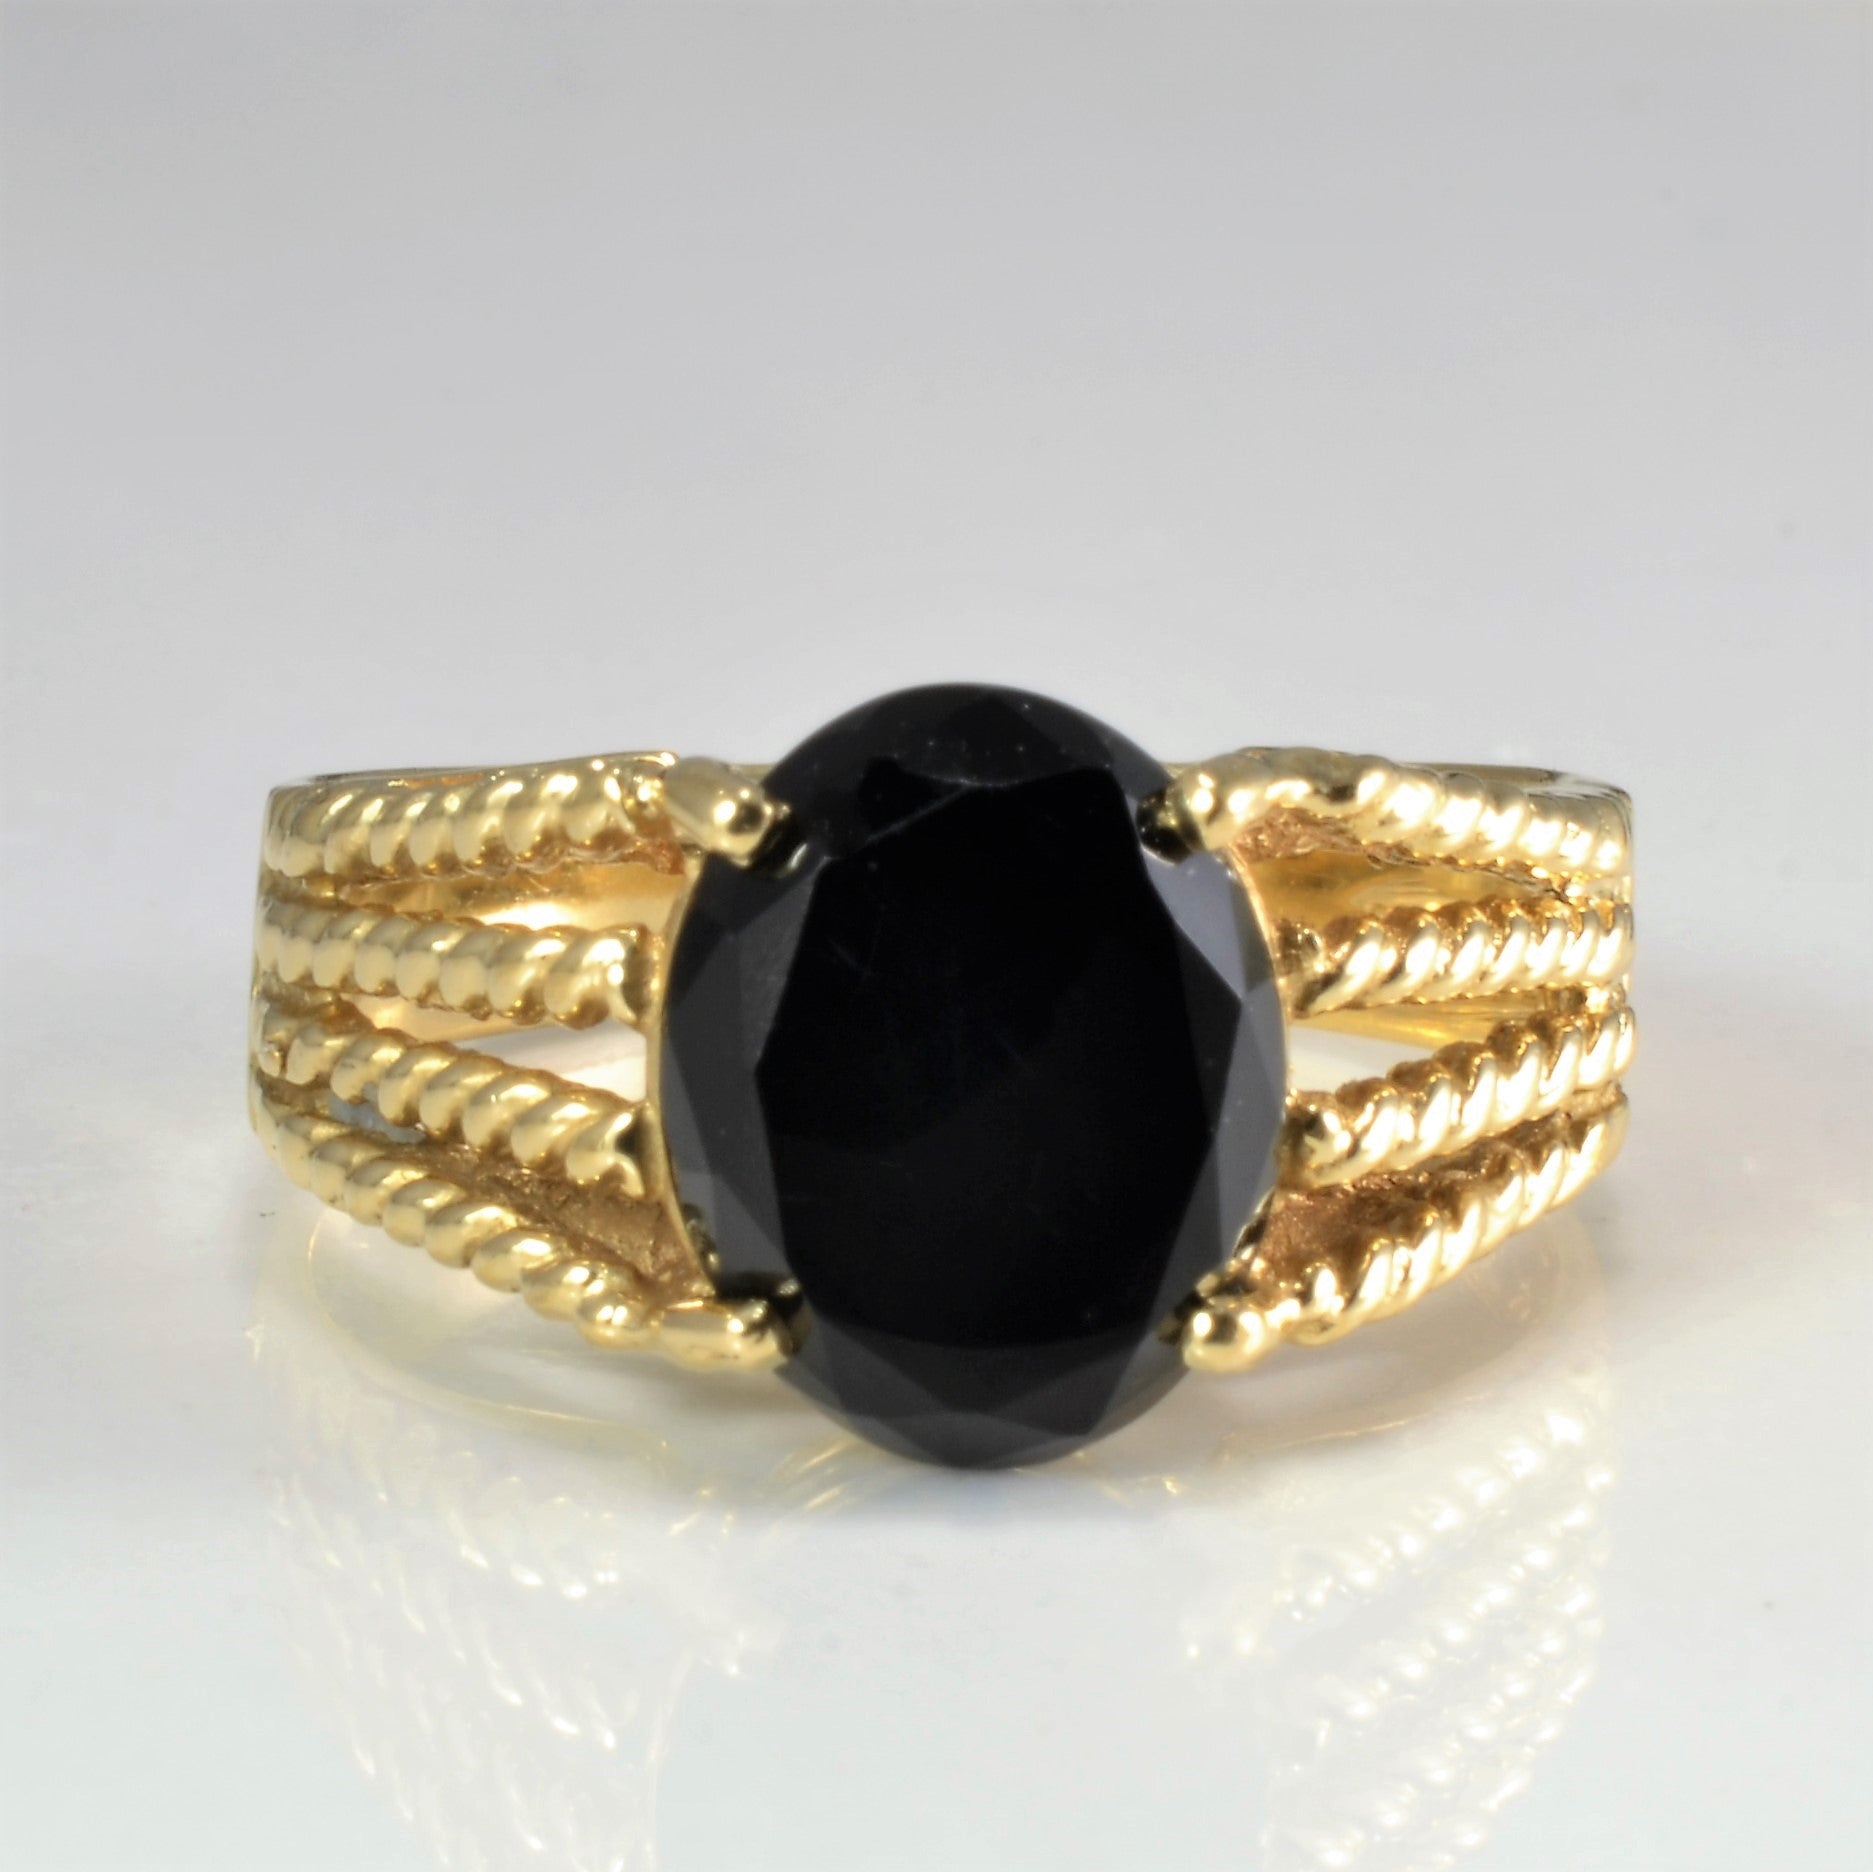 Prong Set Solitaire Onyx Ring | SZ 6.25 |